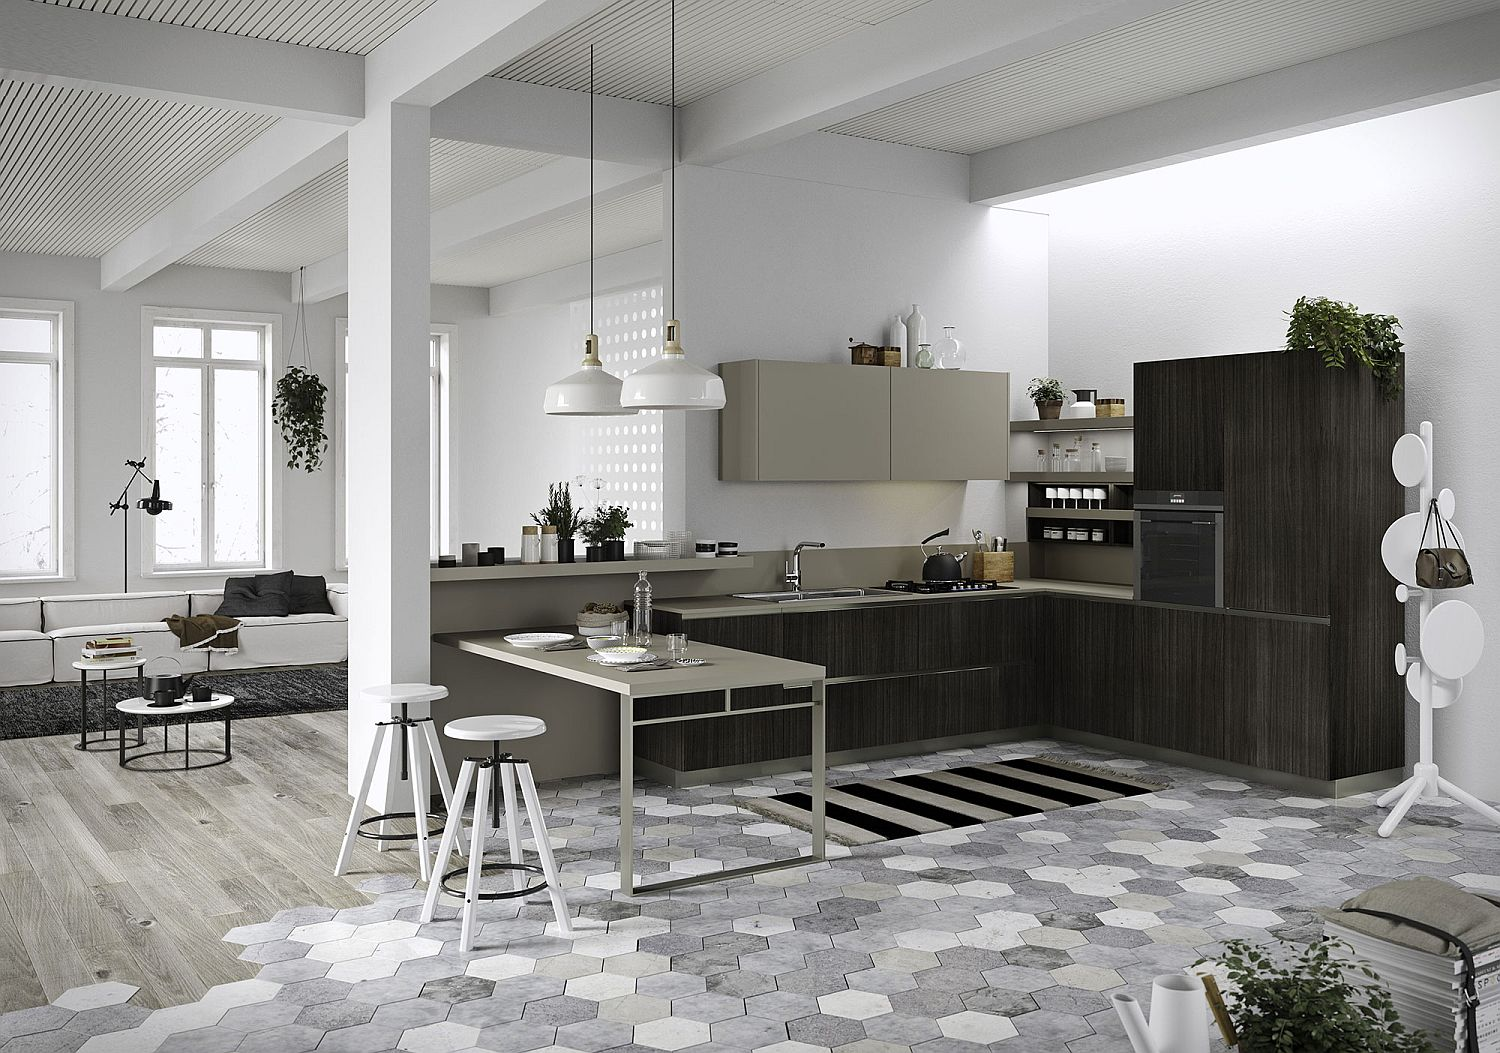 Space-savvy kitchen composition with slim breakfast bench and hexagonal tiles